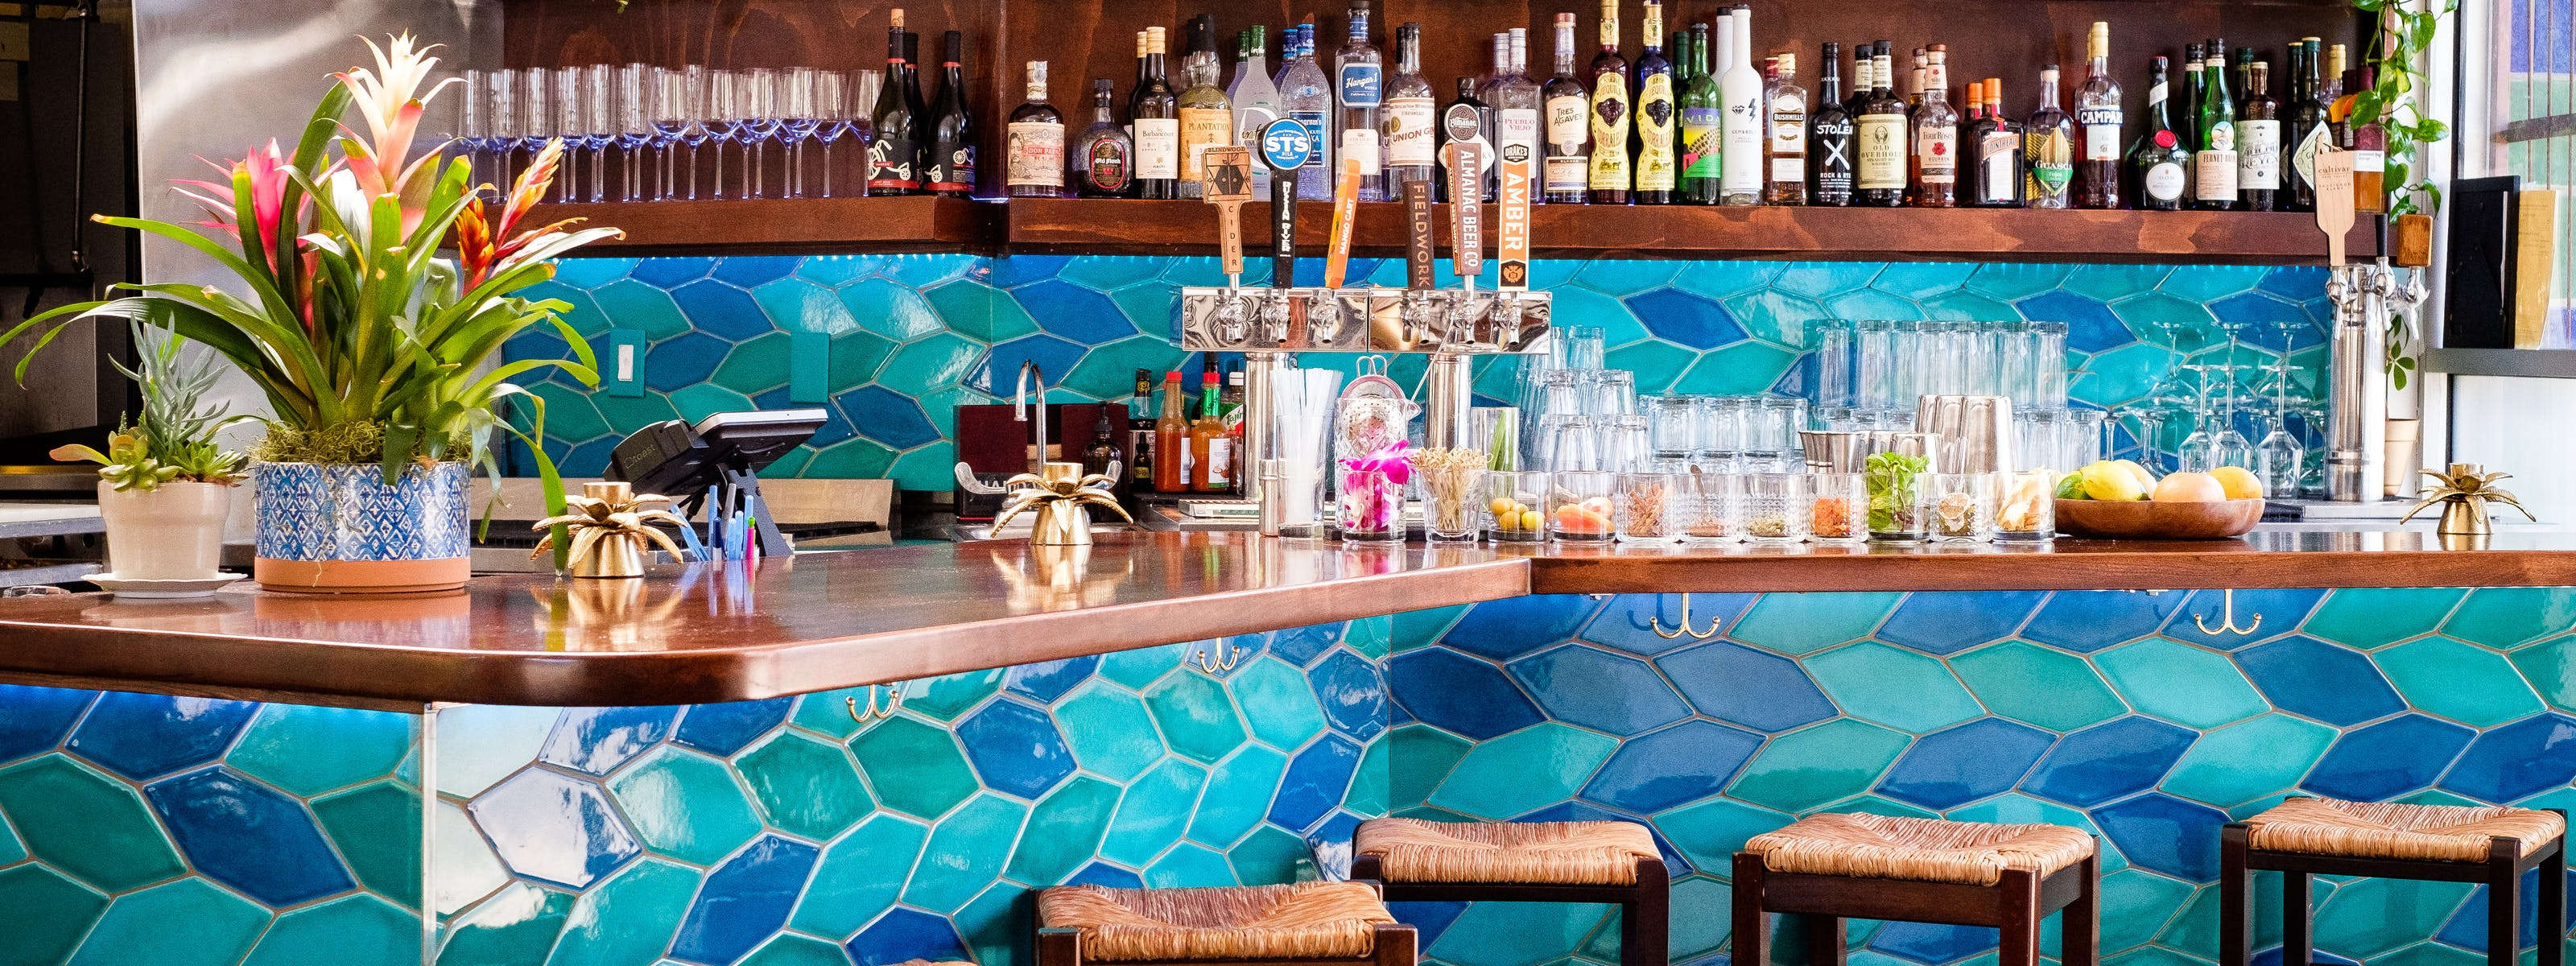 15 Standout LGBTQ-Owned Restaurants In The Bay Area - San Francisco - The Infatuation